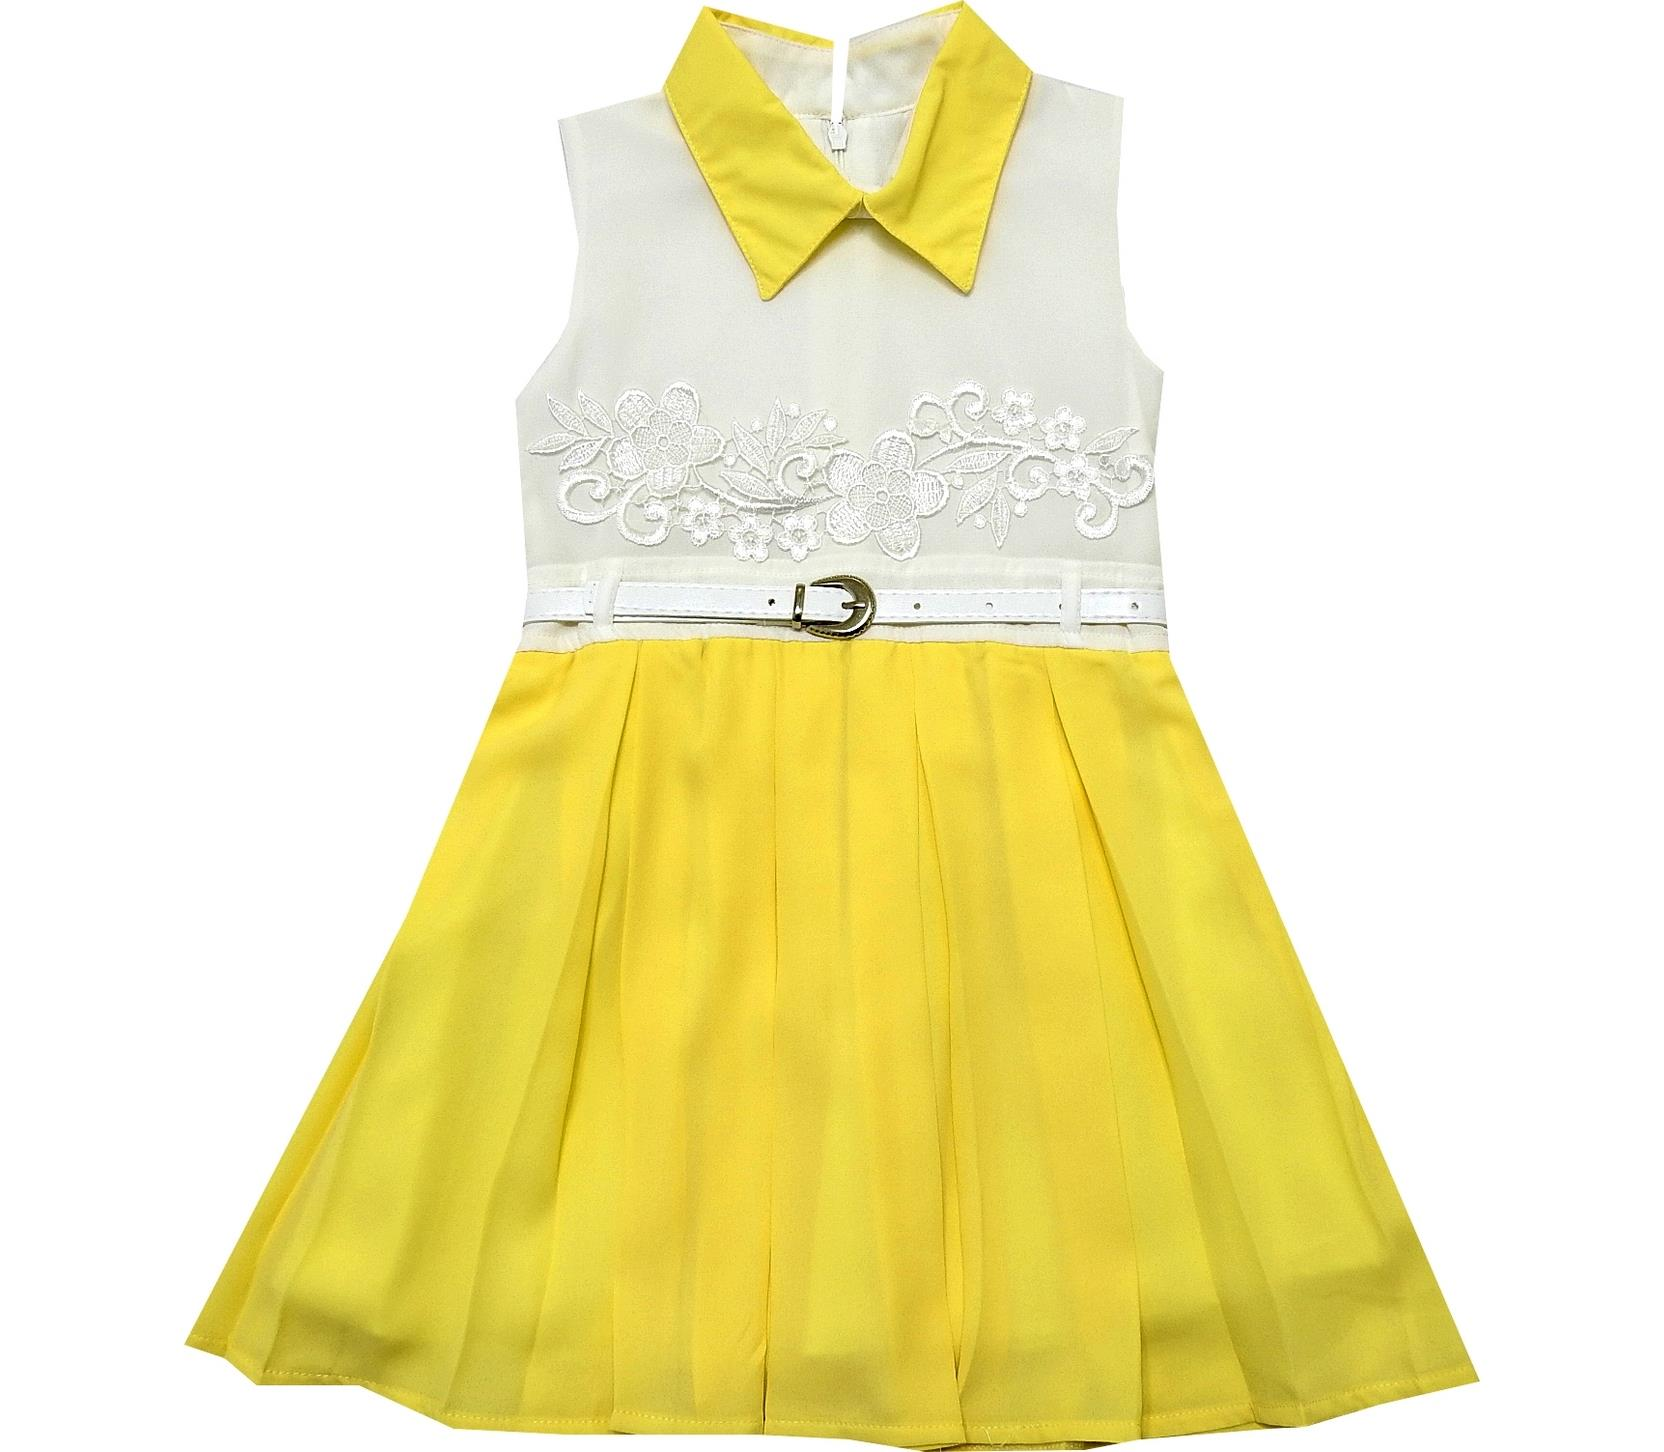 FLOWERY EMBROIDERY PLATED DRESS FOR GIRL (2-3-4-5 AGE)